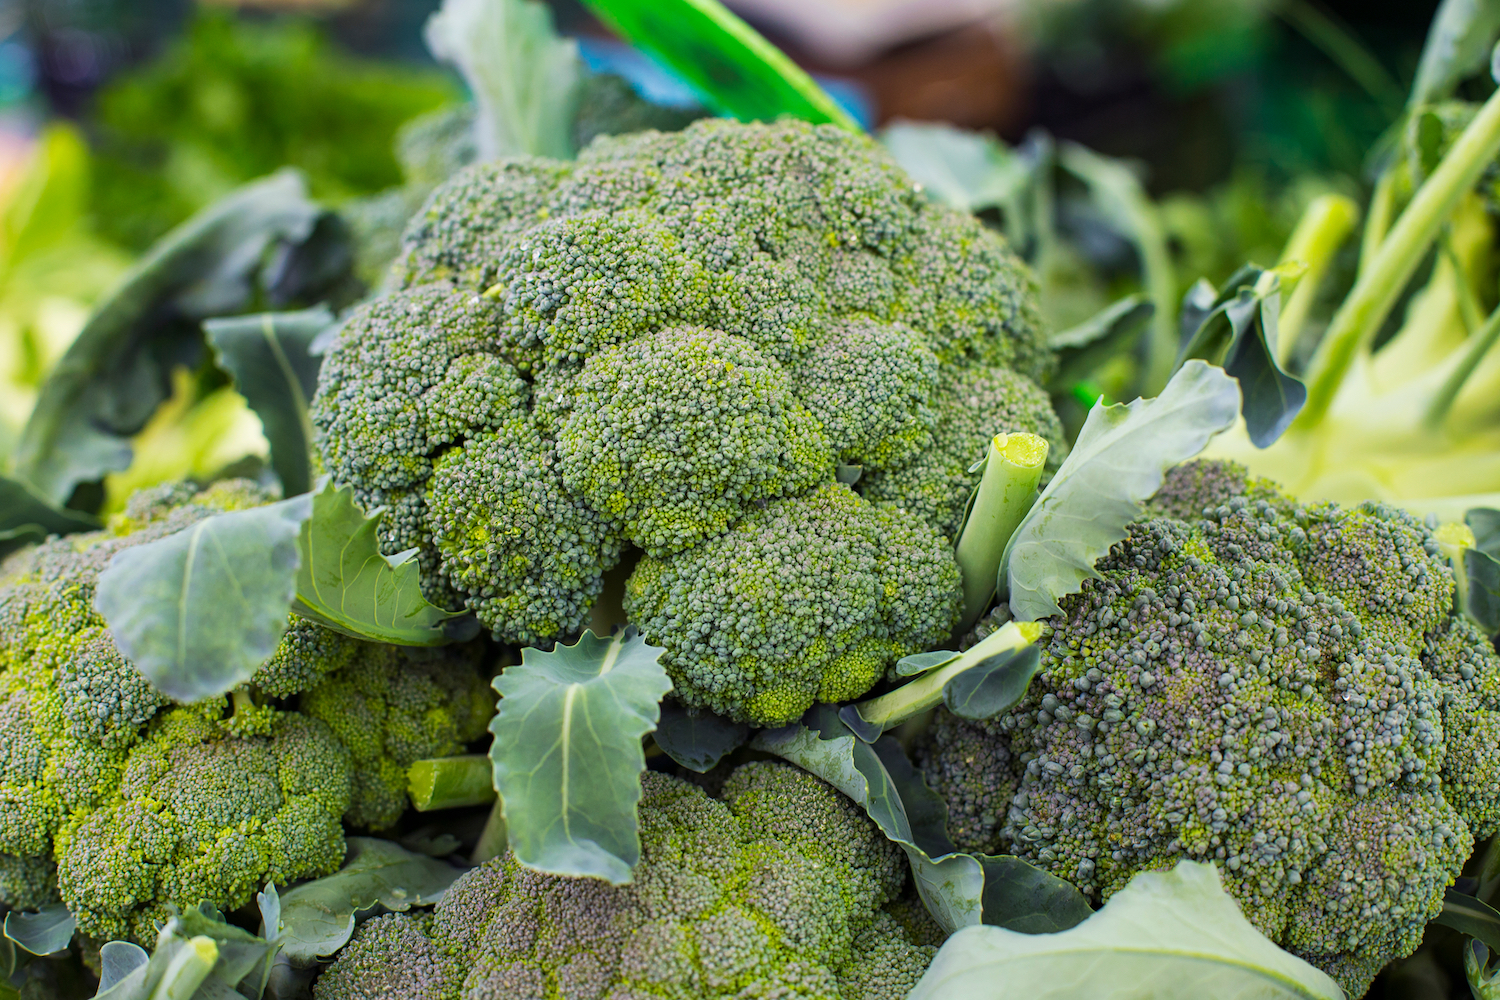 Broccoli: Health Benefits, Risks and Nutrition Facts